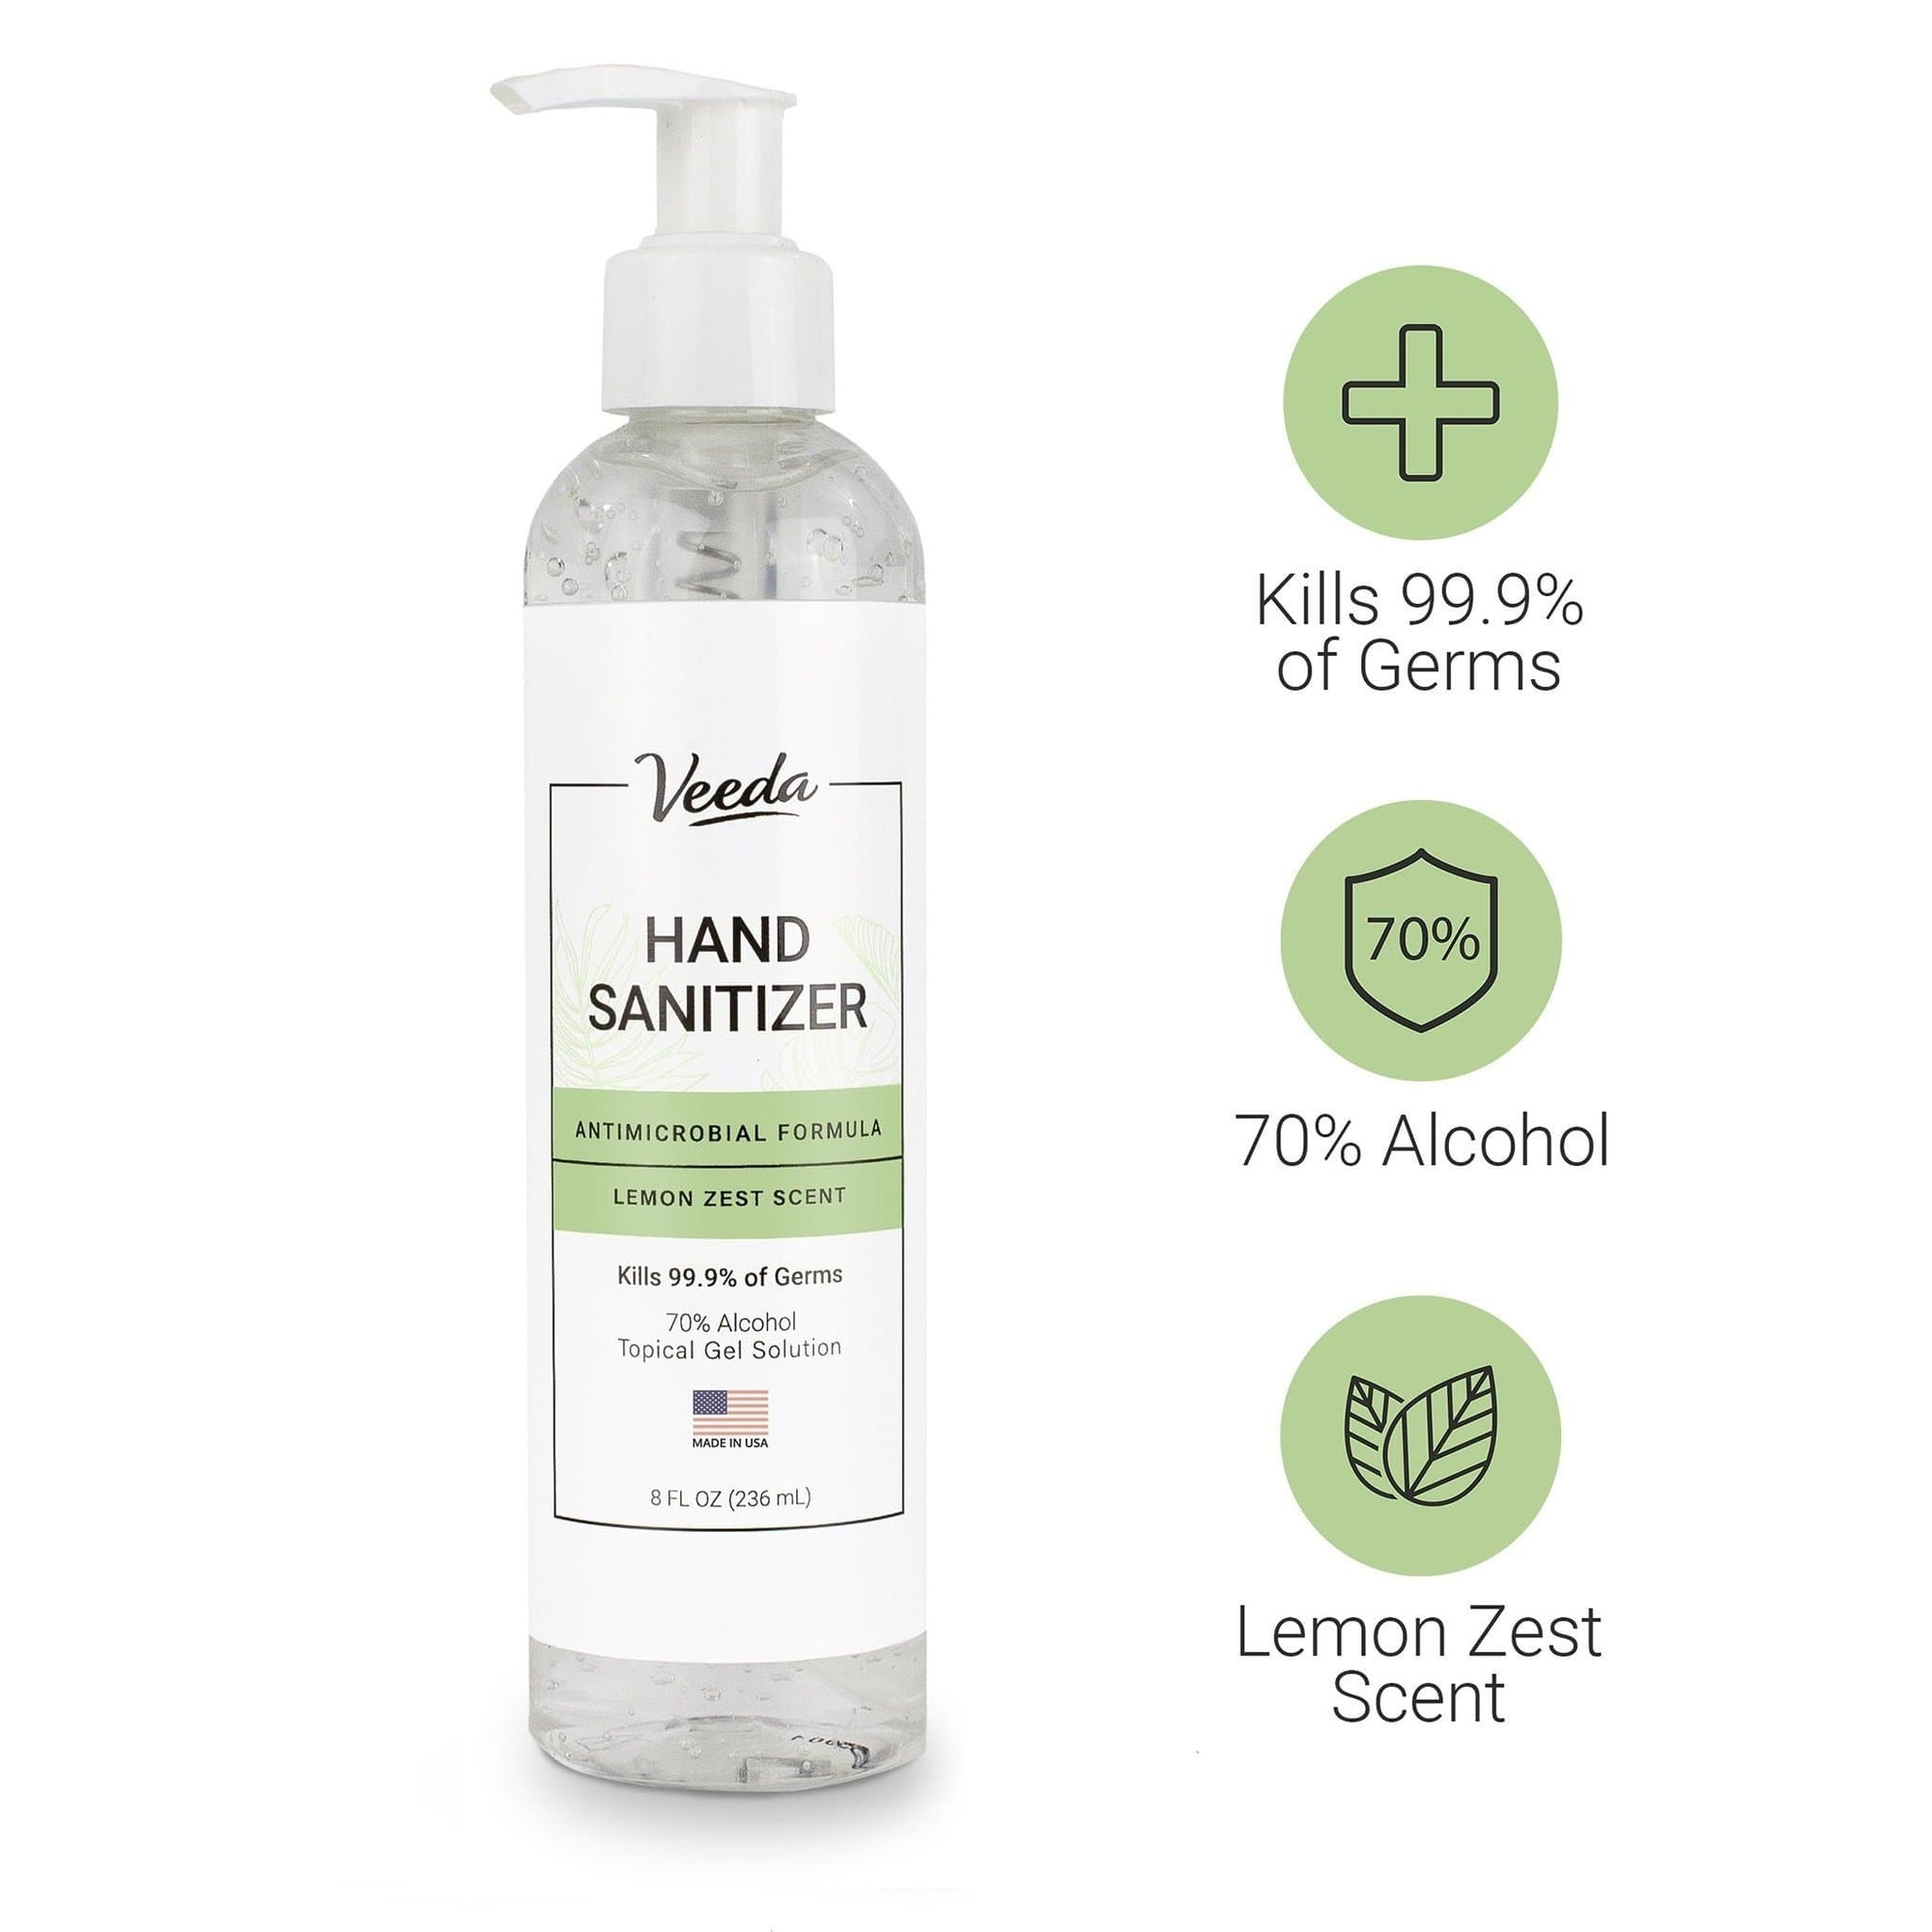 1 Bottle of Hand Sanitizer - Moisturizing Antimicrobial Formula (Made in USA)